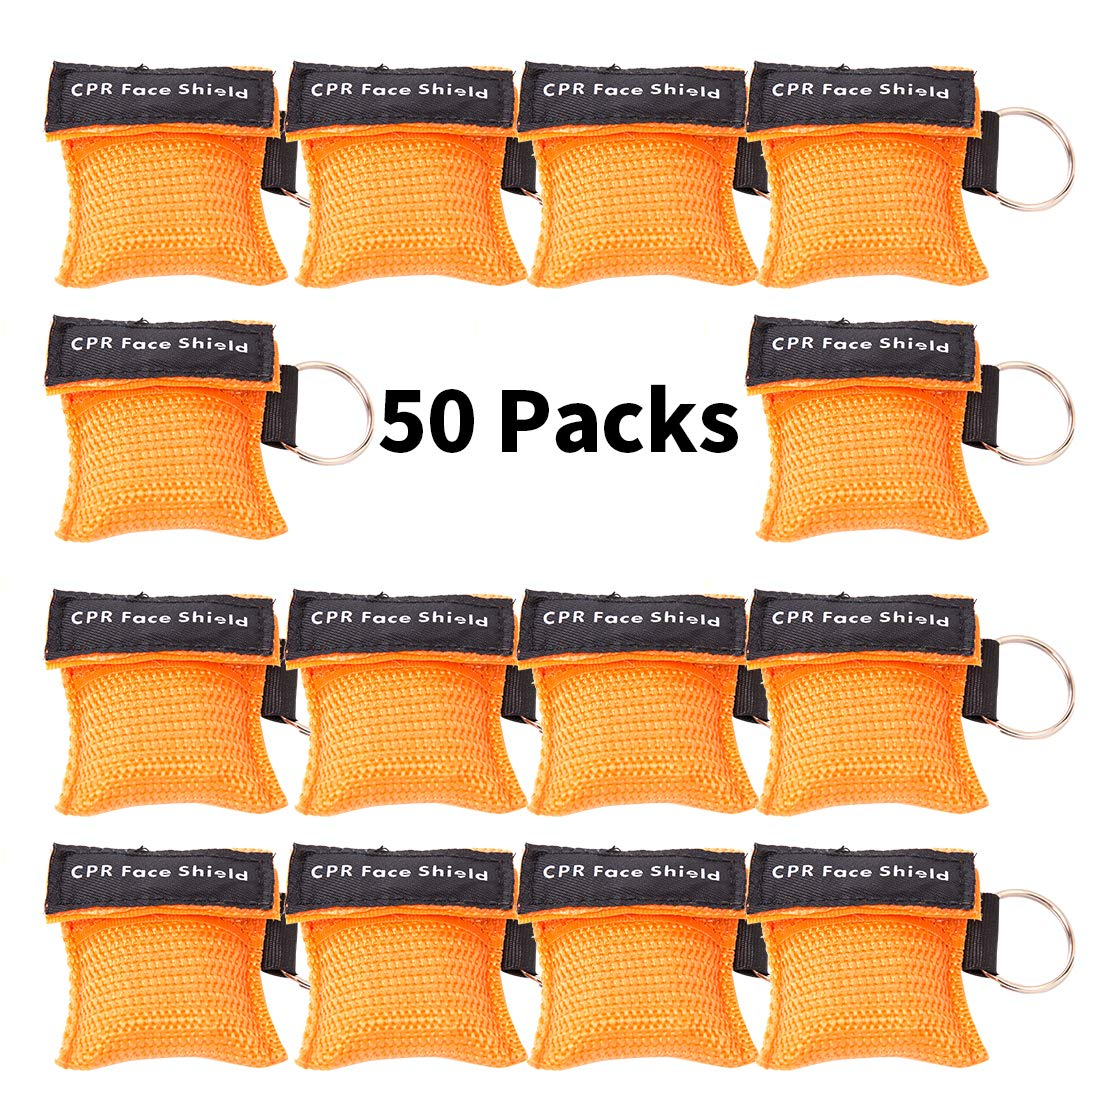 KONGDY 50PCS CPR Face Shield Keychain Mask Rescue Mask CPR Disposable Emergency CPR Pocket Mask with One-Way Valve Breathing Barrier for First Aid by KONGDY